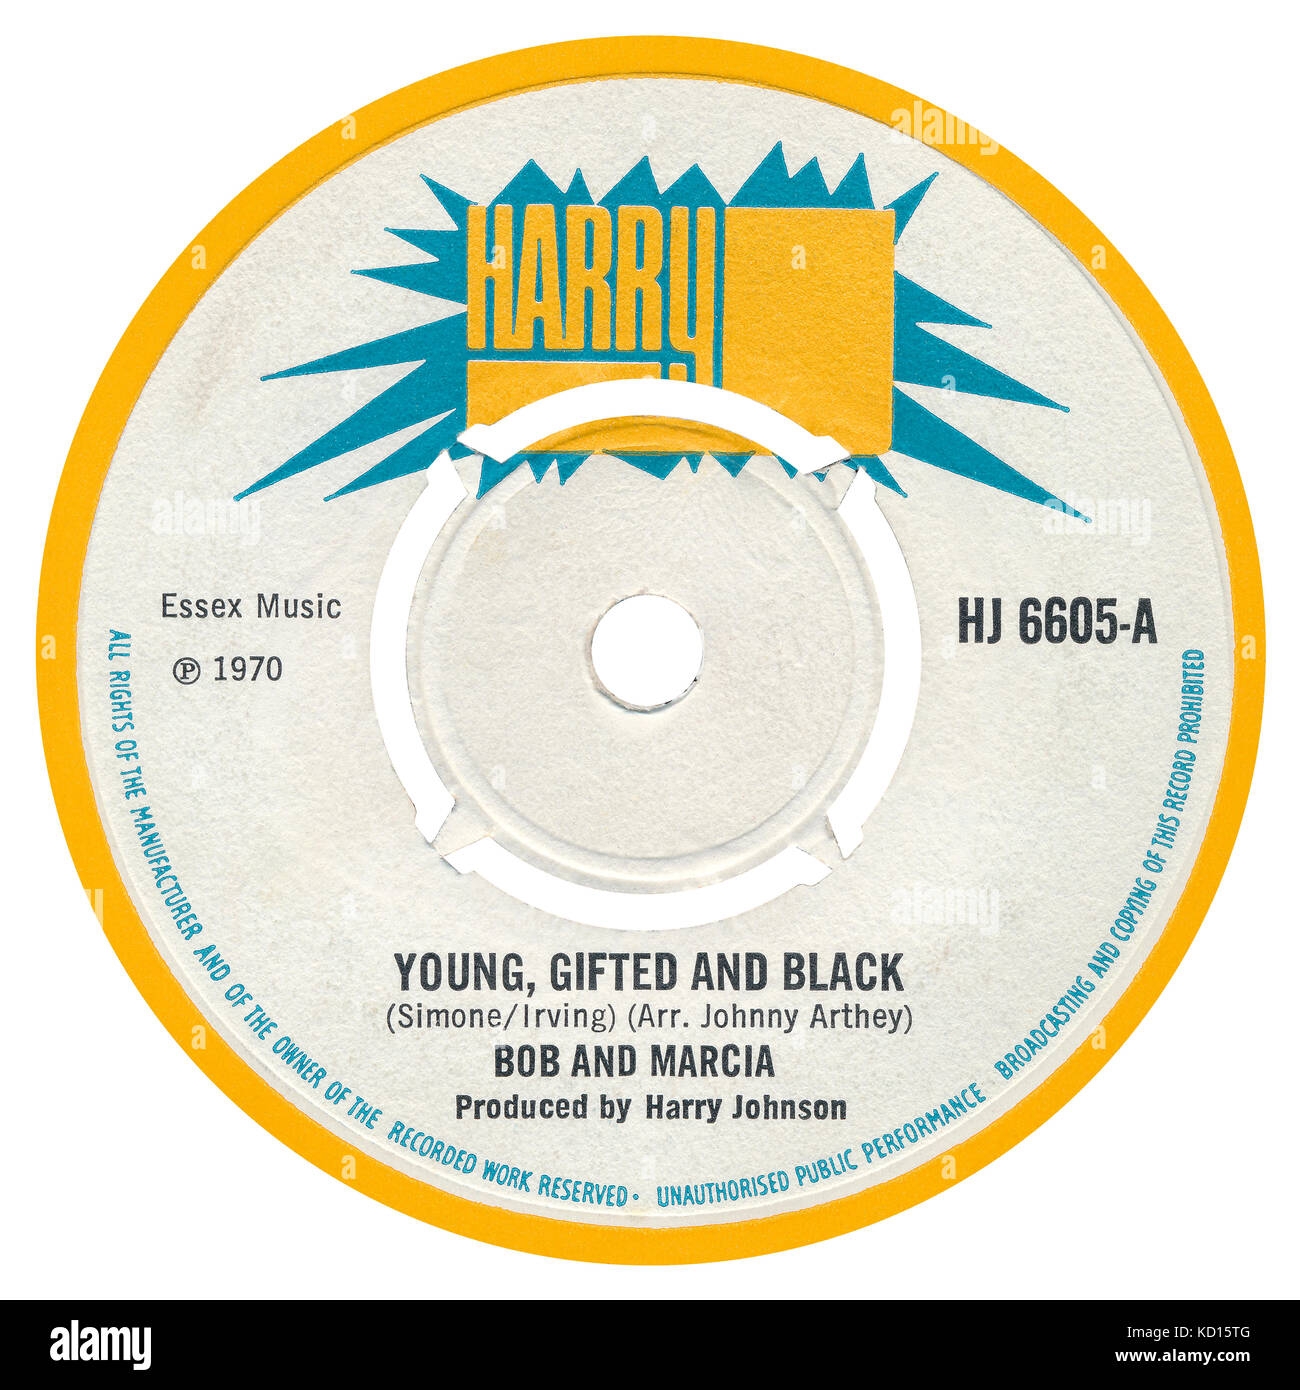 45 RPM 7' UK record label of the reggae single Young, Gifted And Black by Bob and Marcia (Bob Andy and Marcia - Stock Image